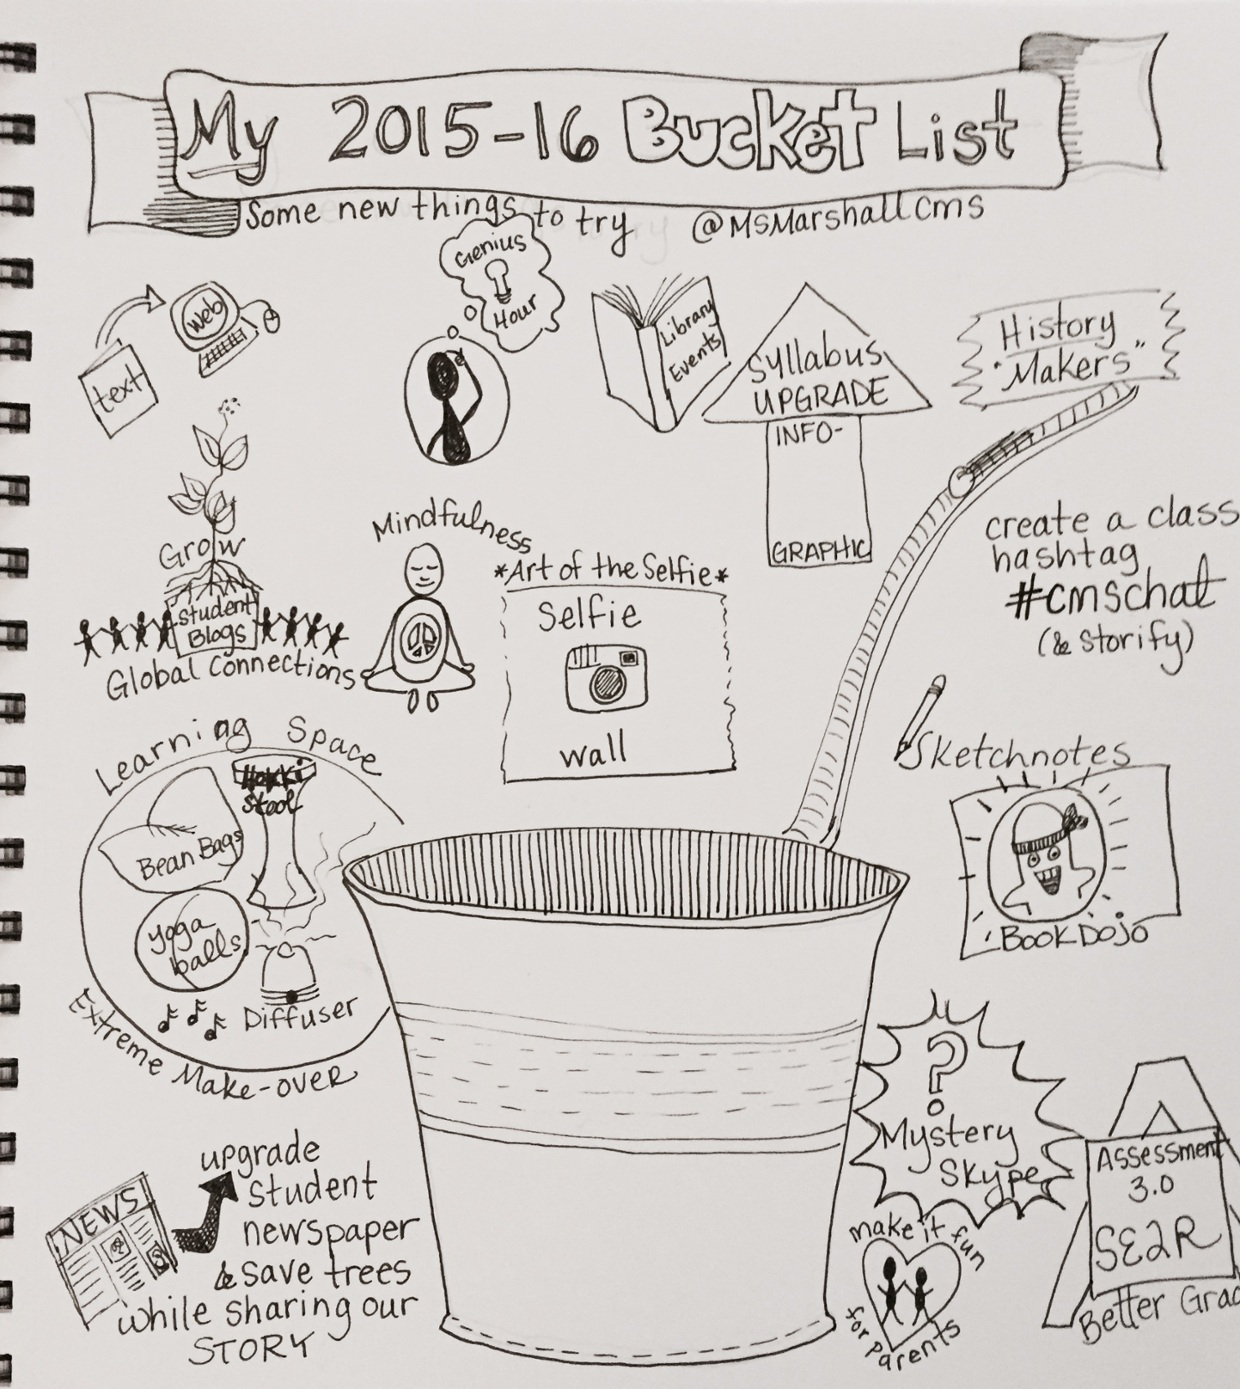 My 2015-16 Bucket List